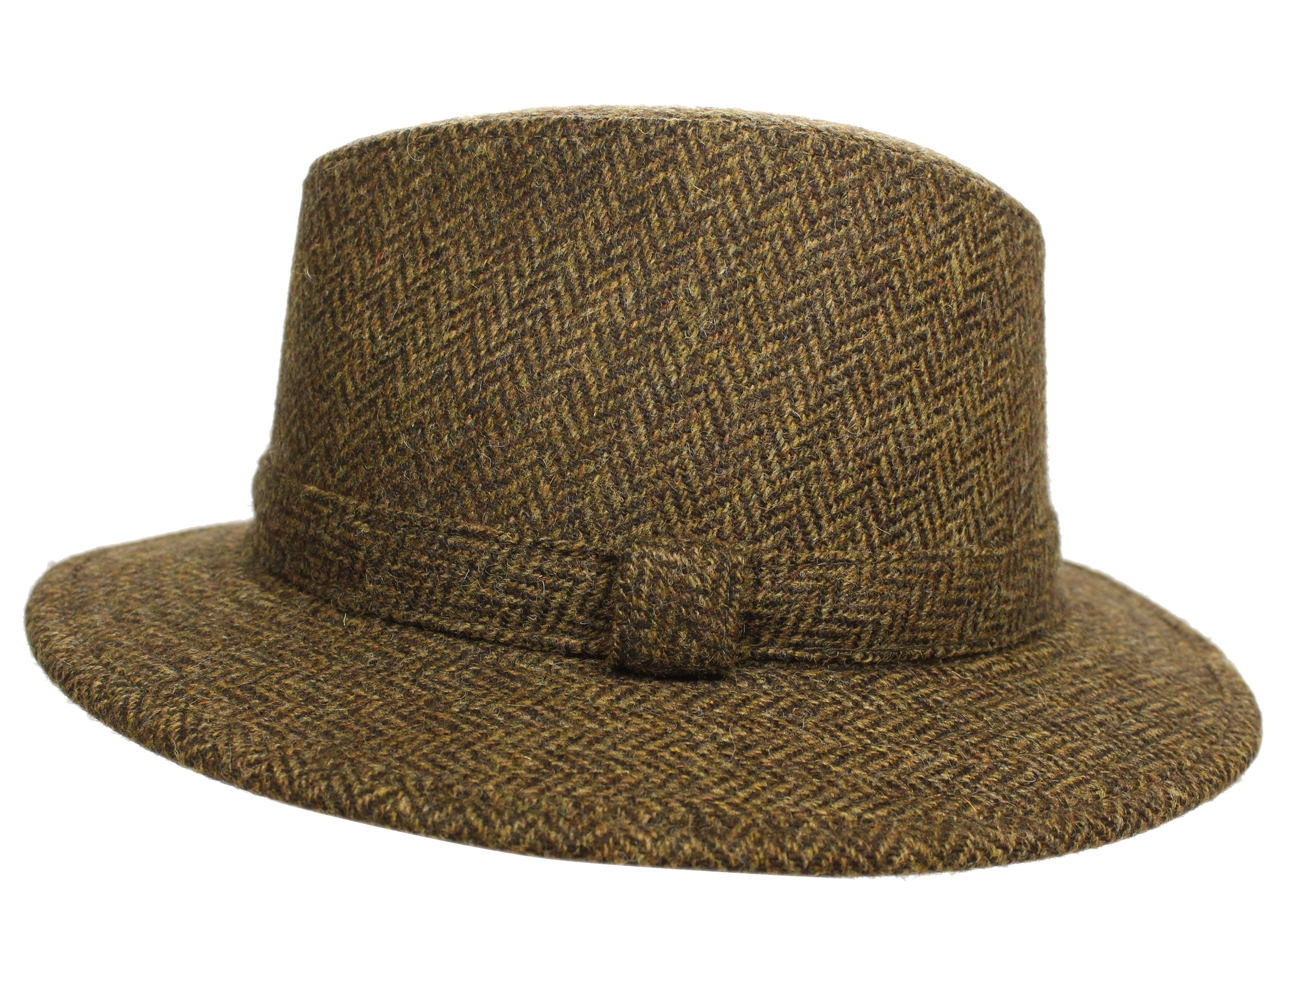 87c892311 Details about New Fedora Hat for Men 100% Wool Black Made in Ireland John  Hanly